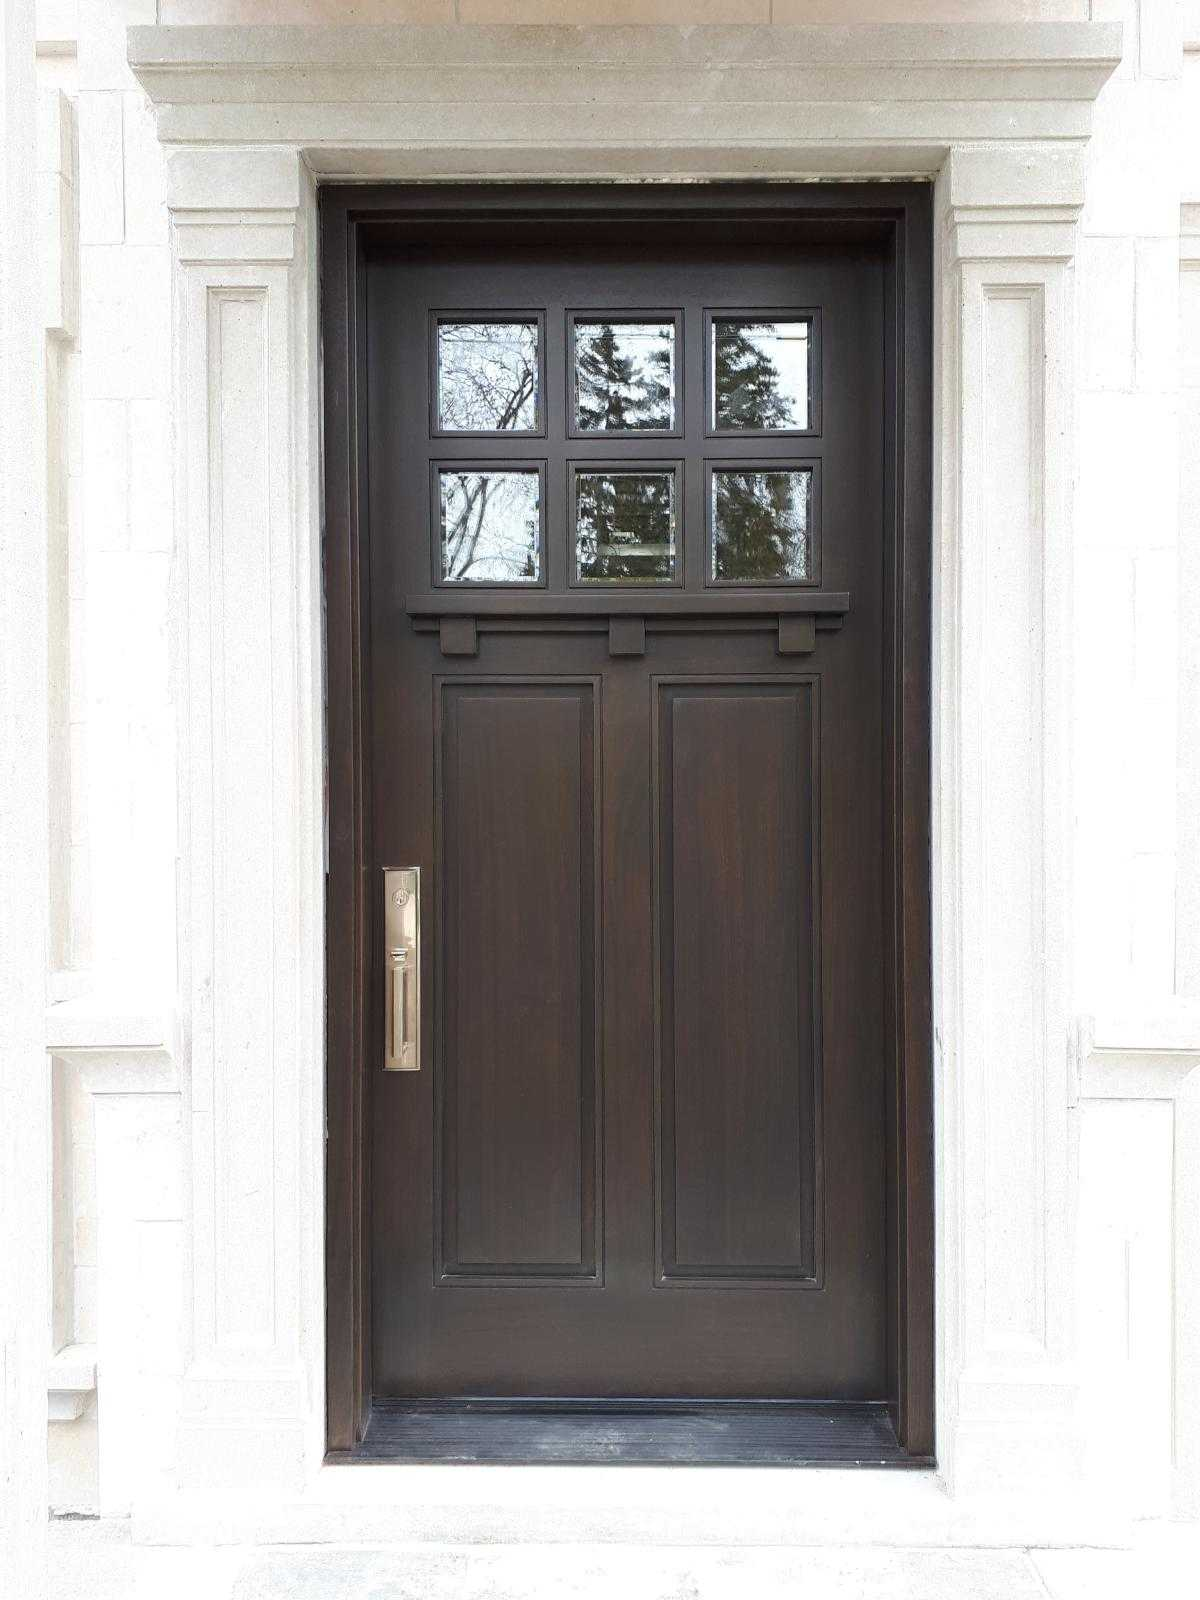 "When your work speaks for itself, don't interrupt.""#SolidWood, #Doors, #Wood #Mahogany, #CustomMadeDoors, #EntryDoors.#DistinctiveLo­ok, #FityourHome Made by #NorthwoodDoorsInc. Your best value and quality, #HandCraftedDoors. Every door #Manifactured by us has our corporate stamp - a testament to our dedication and passion in #Woodwork. Let #NorthwoodDoorsInc. add to your home's #CurbAppeal by enhancing the quality and beauty of your #EntryDoors. Visit our #Showroom to envision how one of our many #doors on display might look like at your #Home. Contact us today Tel. 416-253-2034, info@northwooddoors.com, www.northwooddoor.com — in Toronto, Ontario"